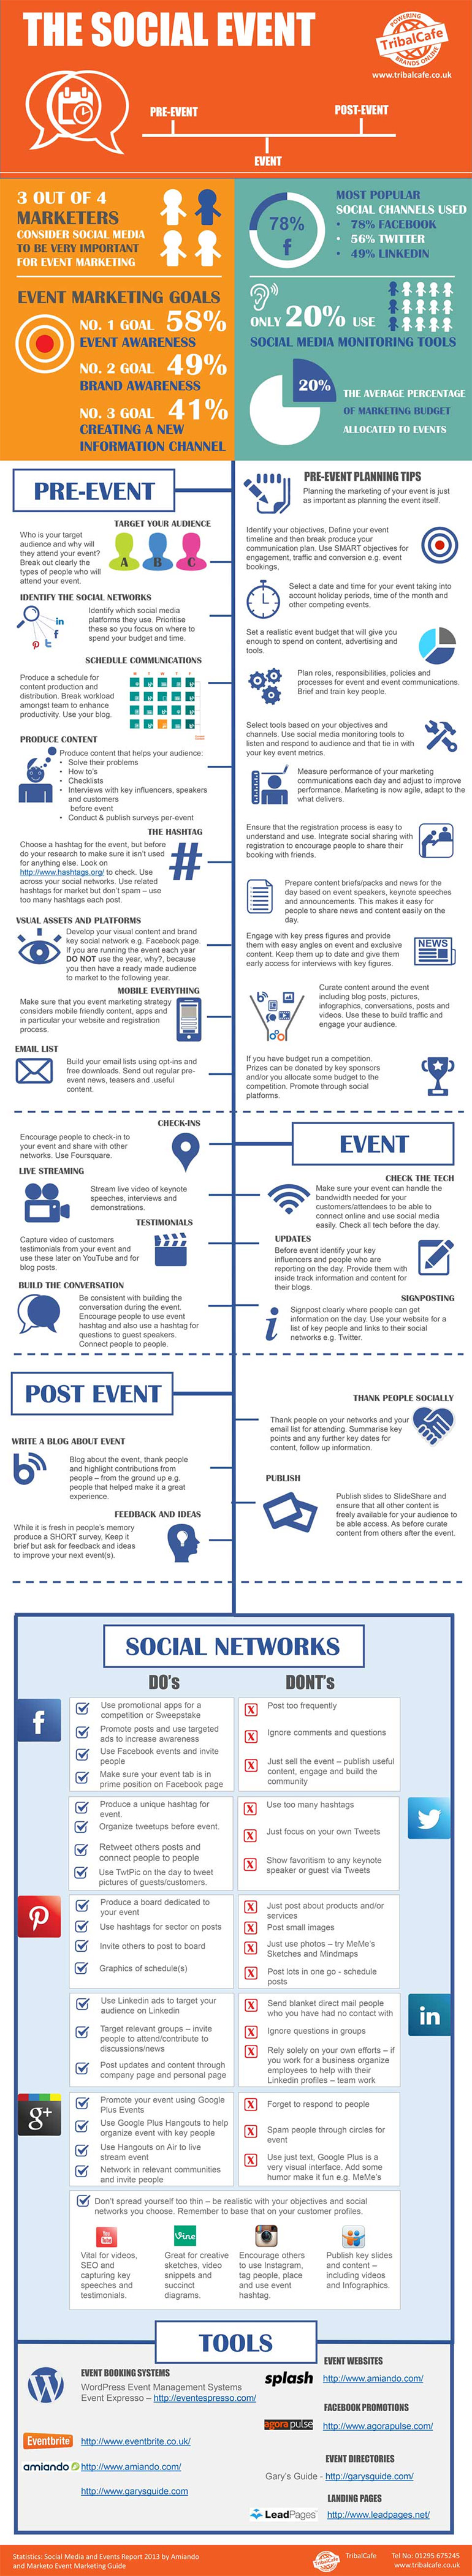 social-media-management-fuer-events-infografik